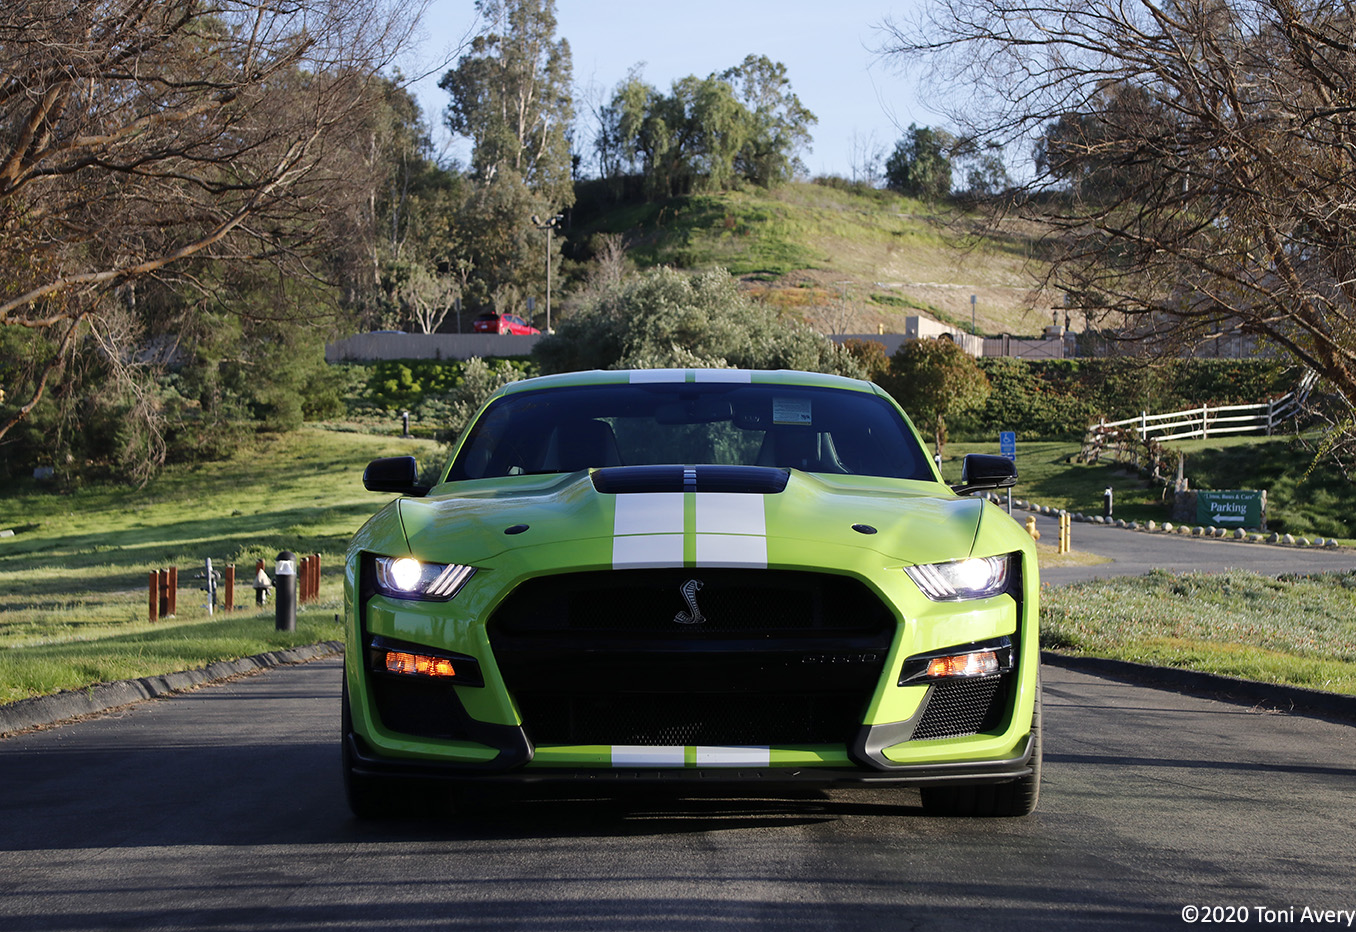 2020 Ford Mustang GT500 Review (w/ video)